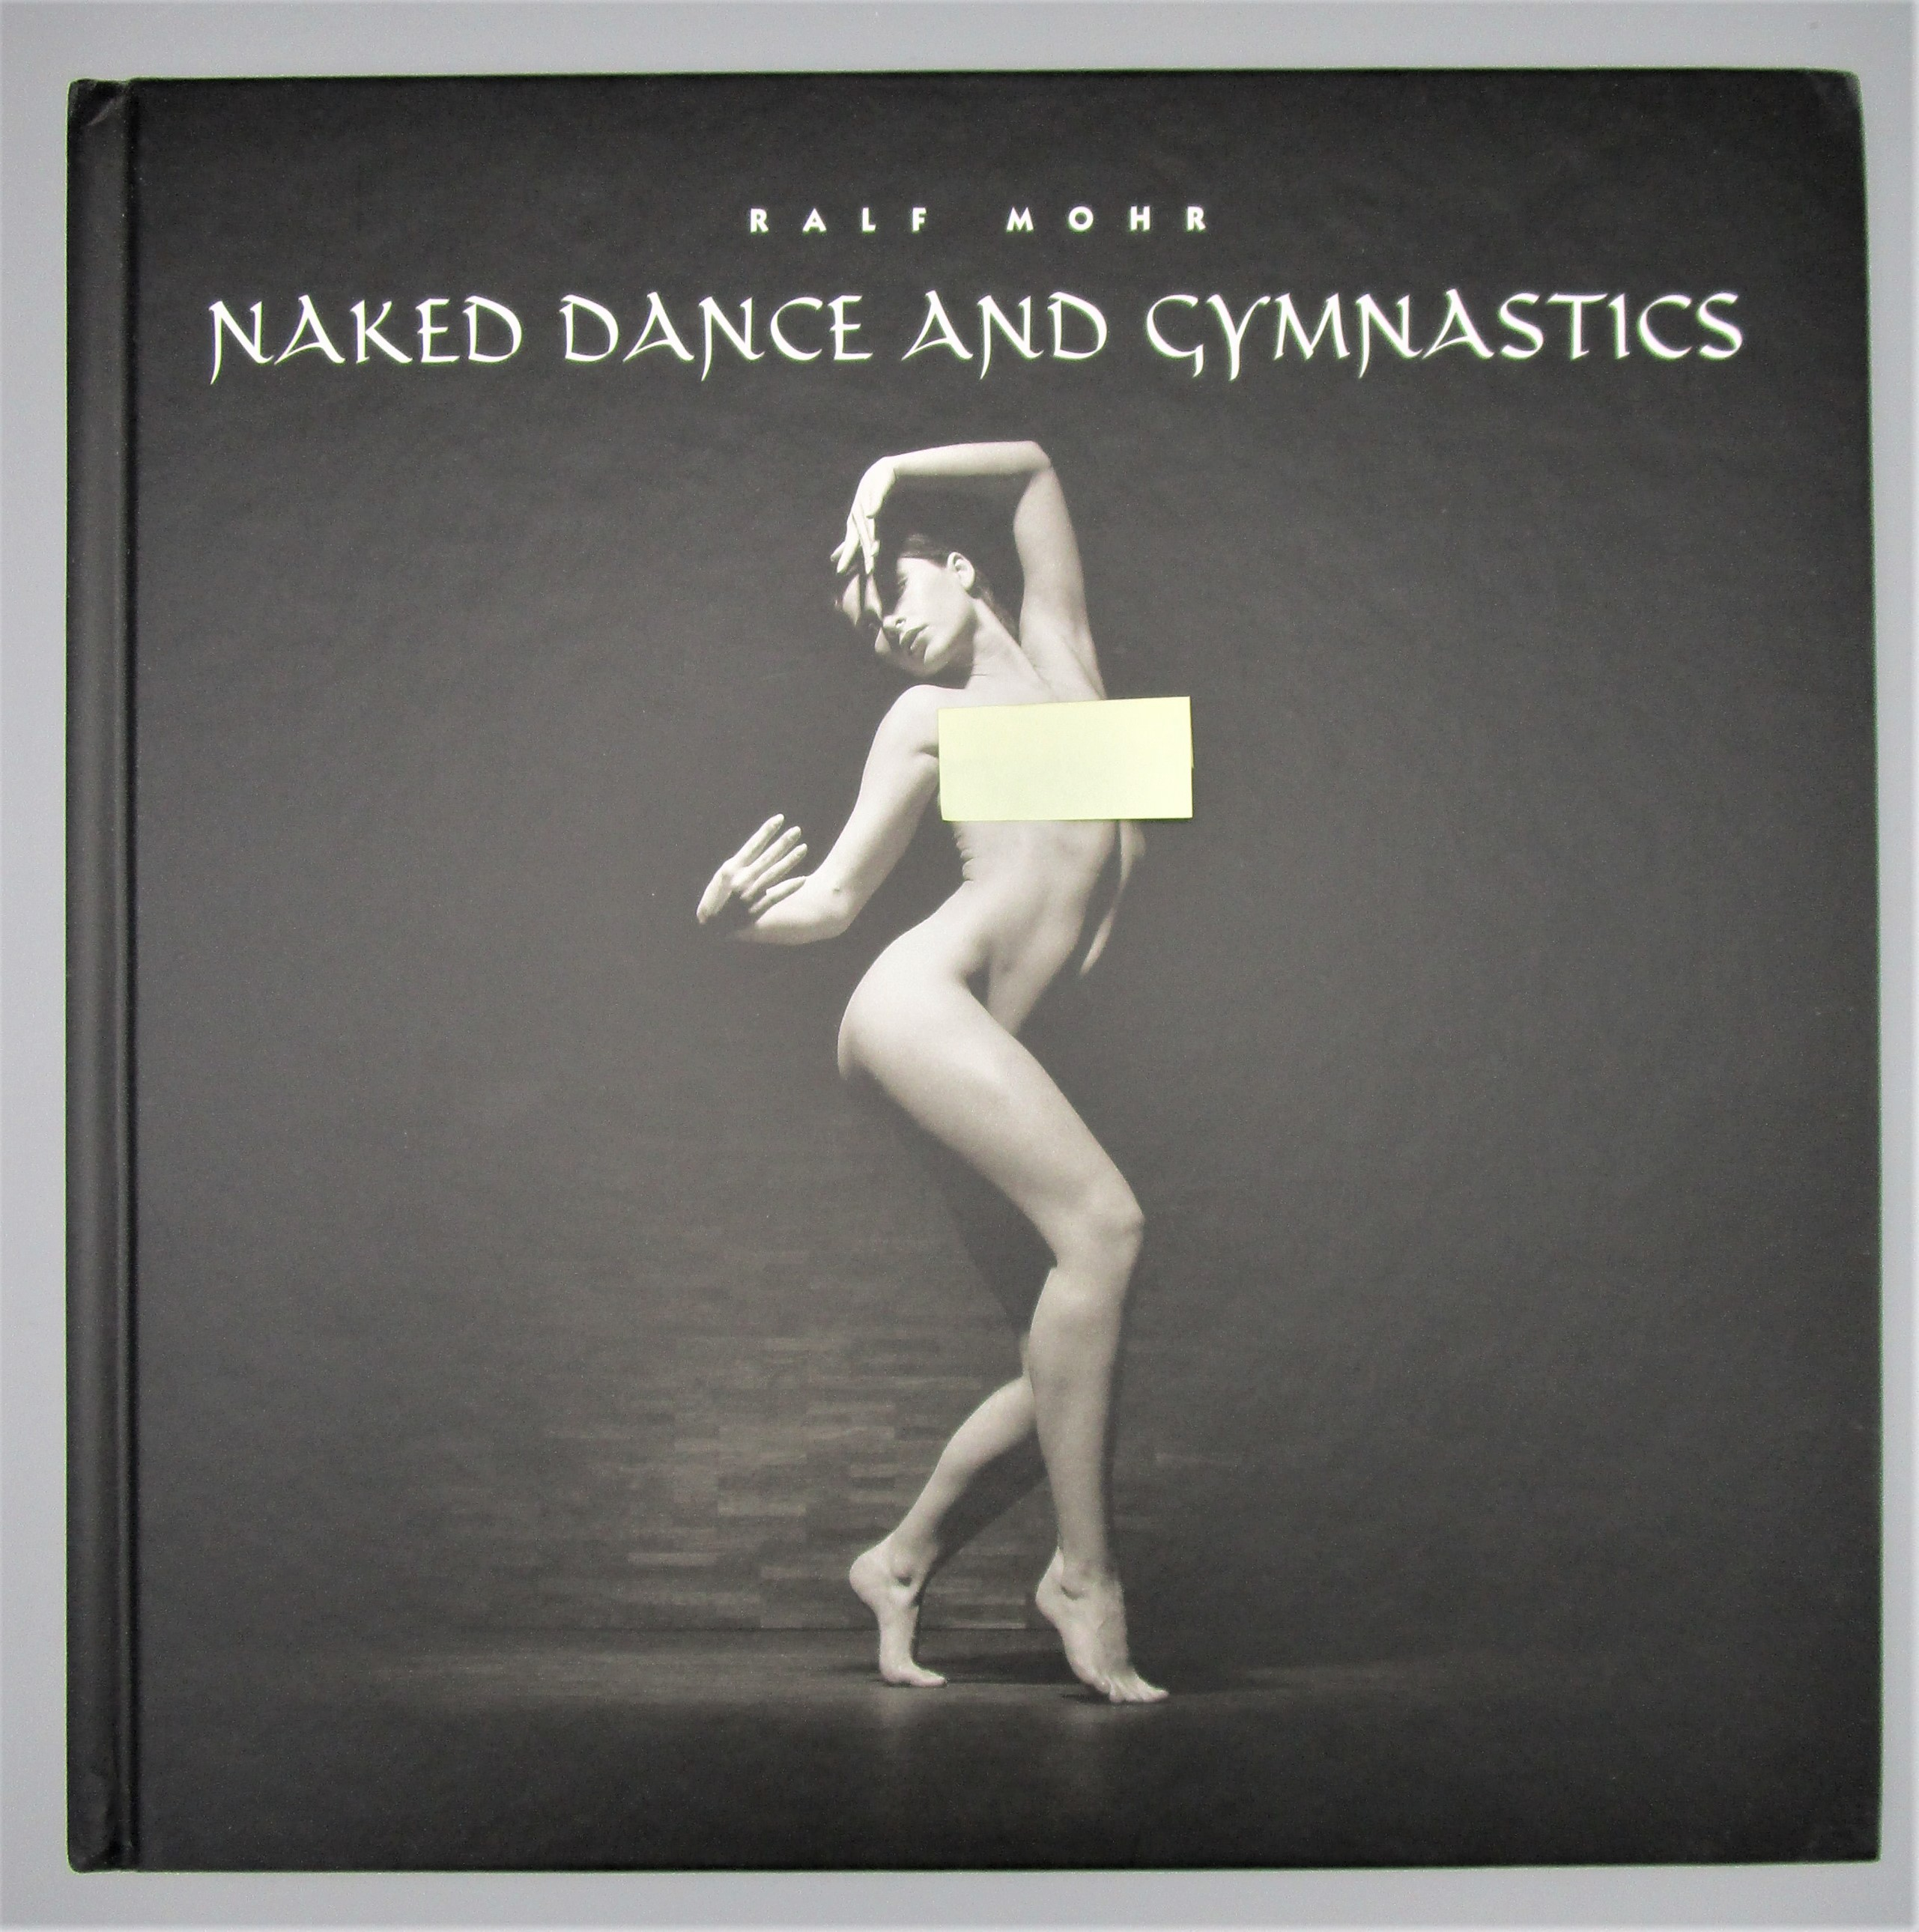 NAKED DANCE AND GYMNASTICS, by Ralf Mohr - 2008